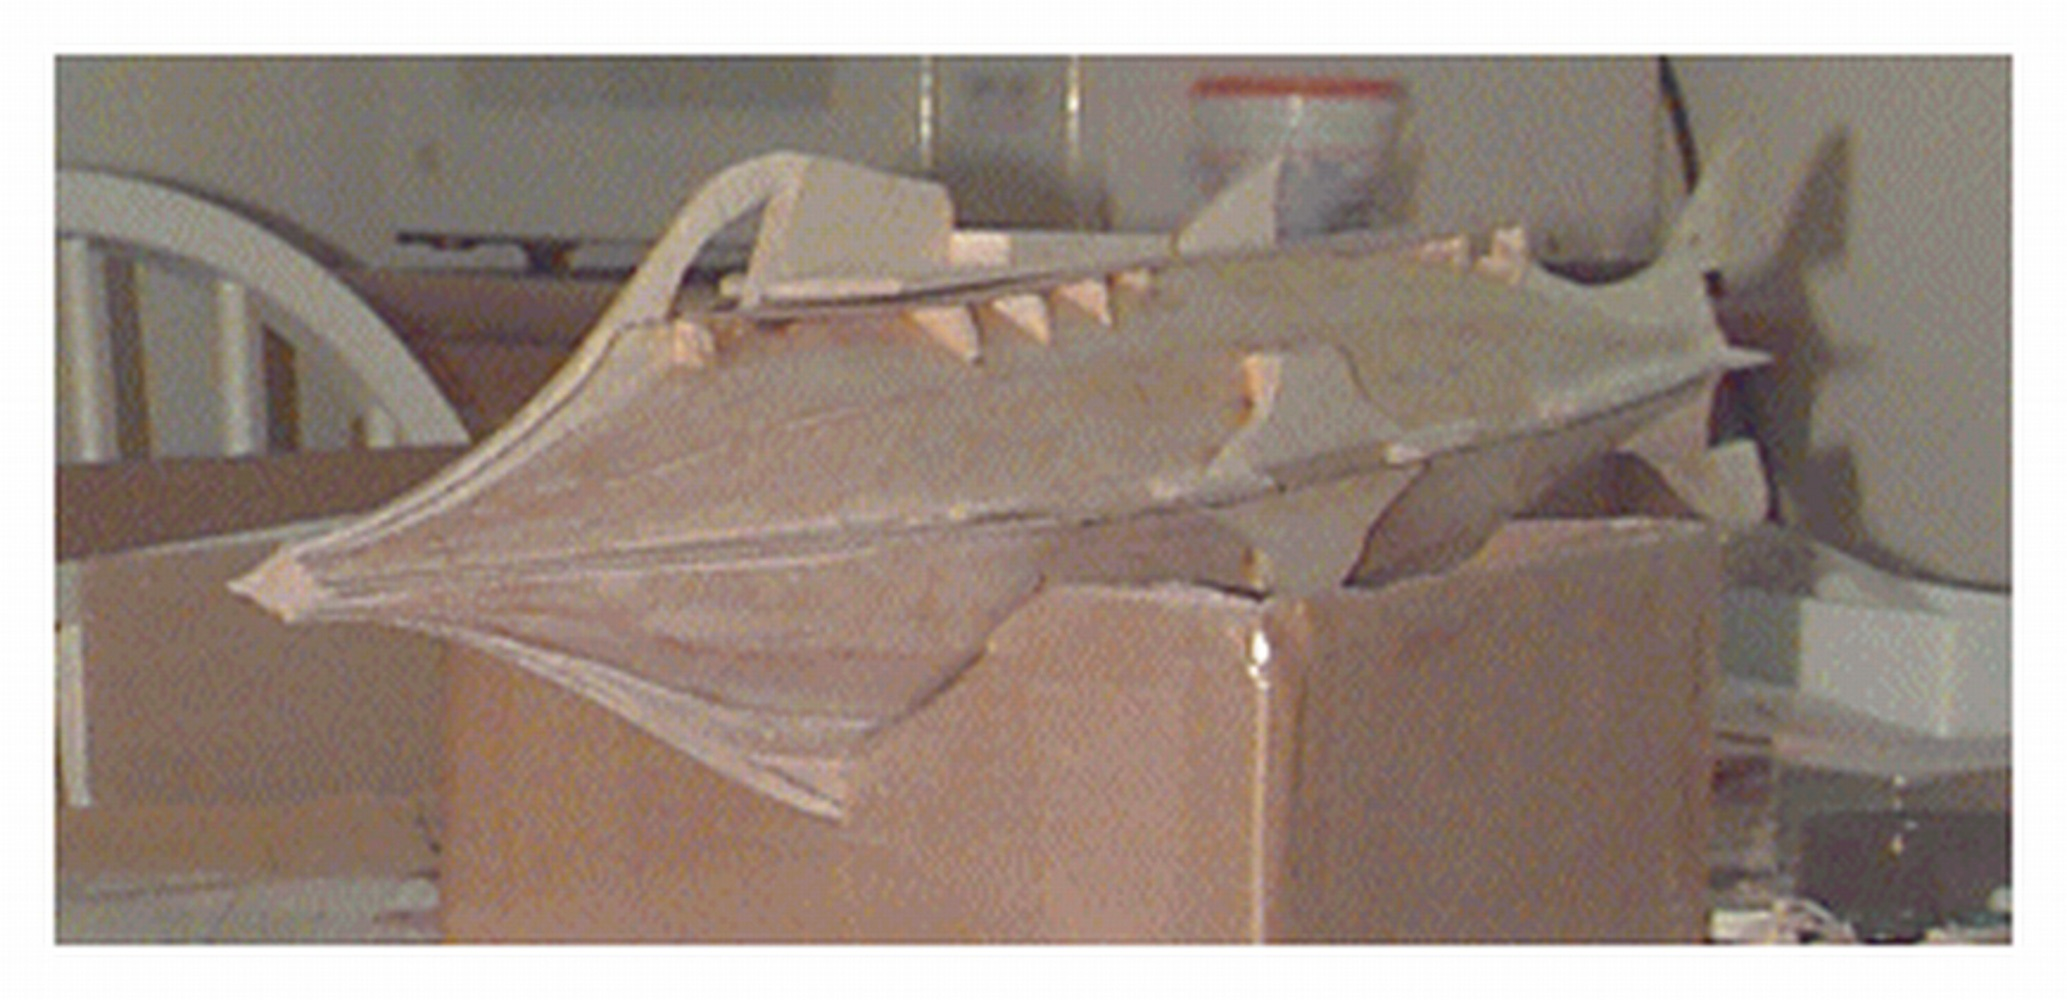 This view shows the deck in place and the supports (backing) for the large observation windows on the side of the hull